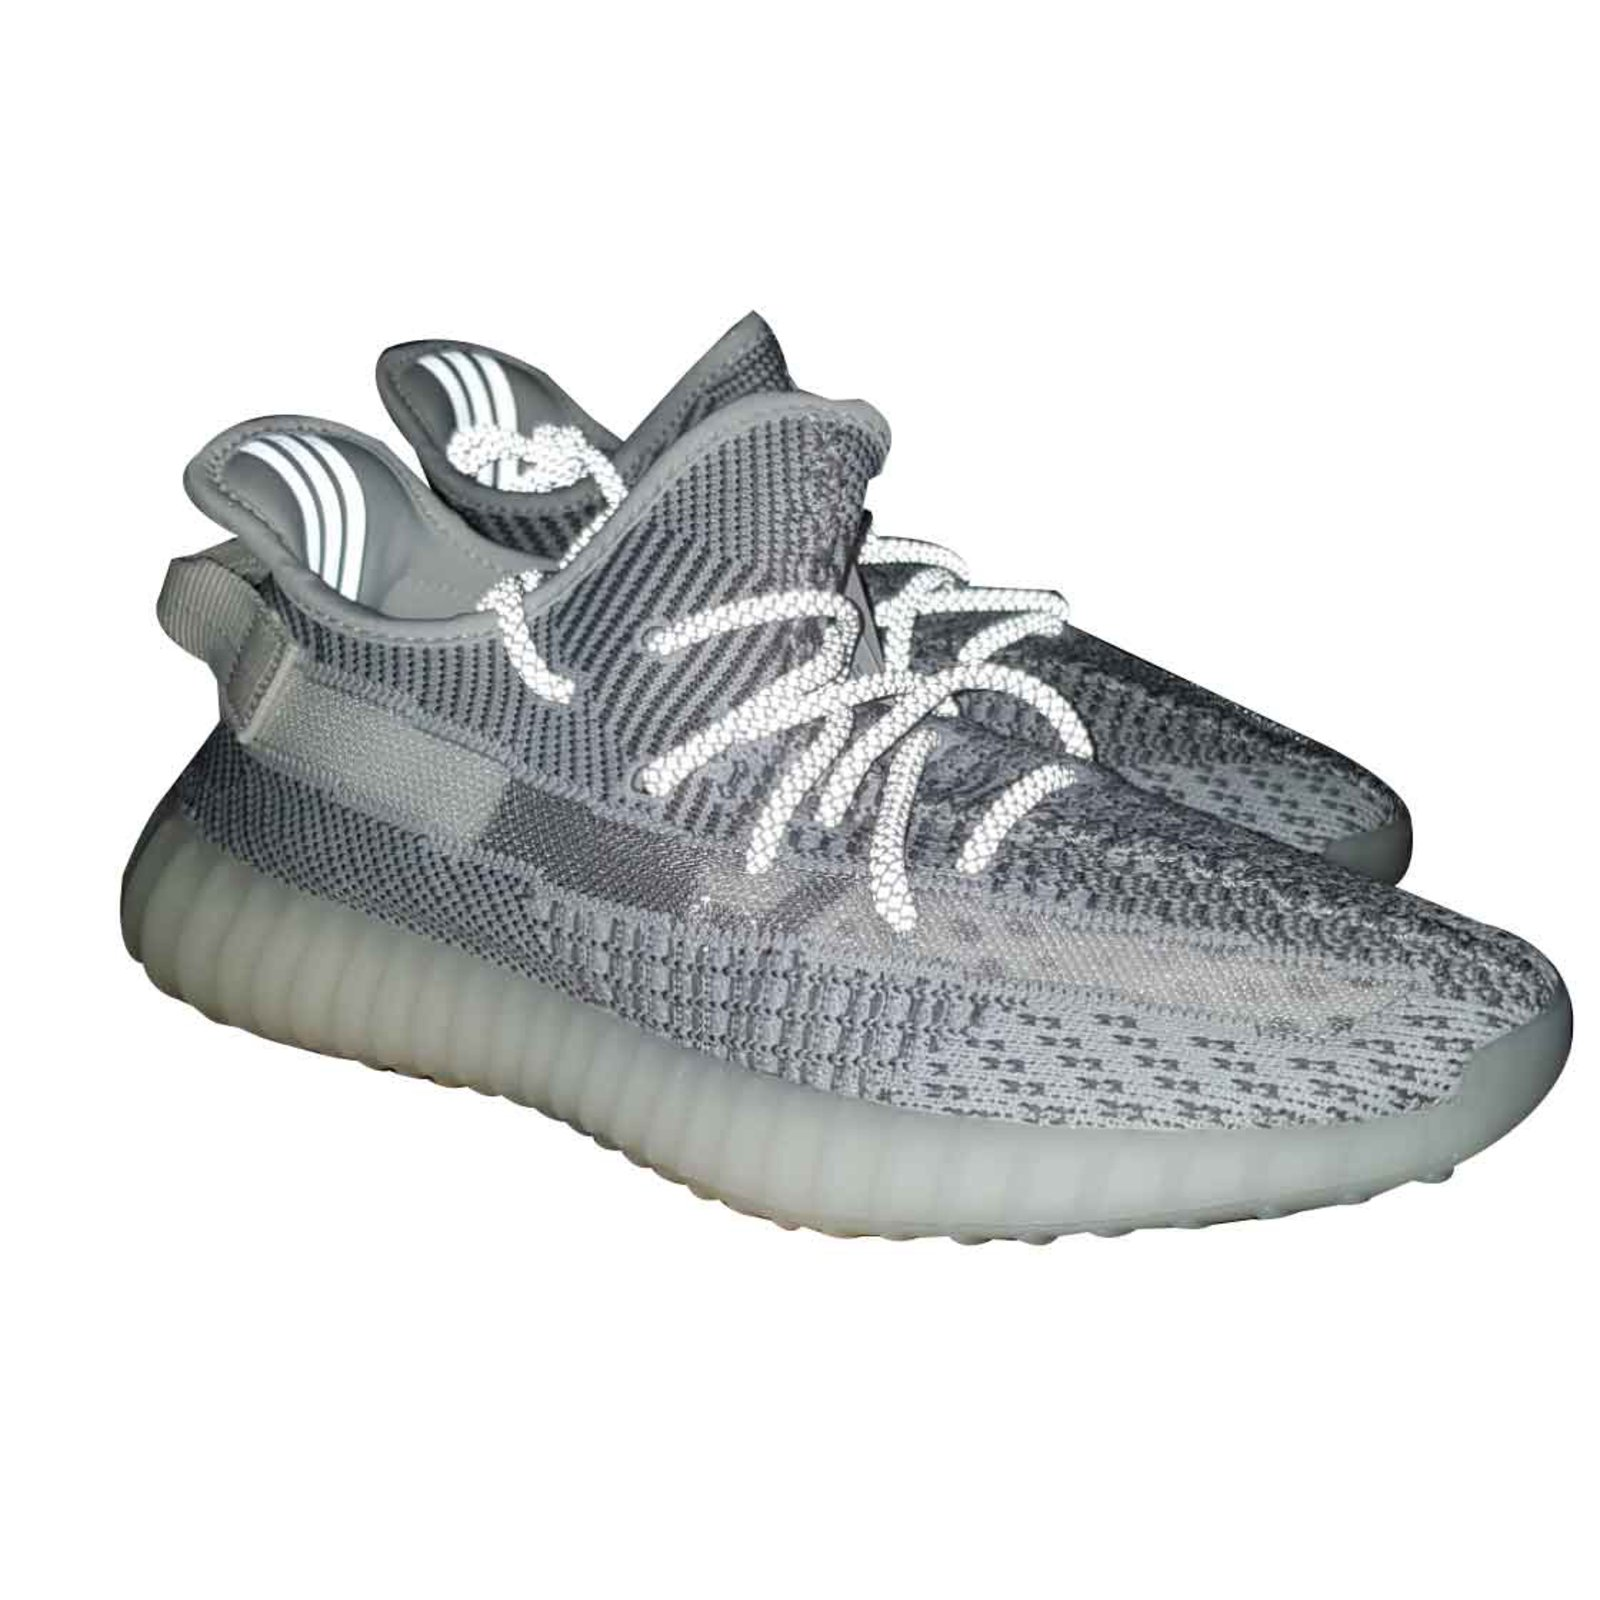 c94119a20f7 Adidas ADIDAS YEEZY BOOST 350 V2 static Non Reflective Sneakers Cloth  White